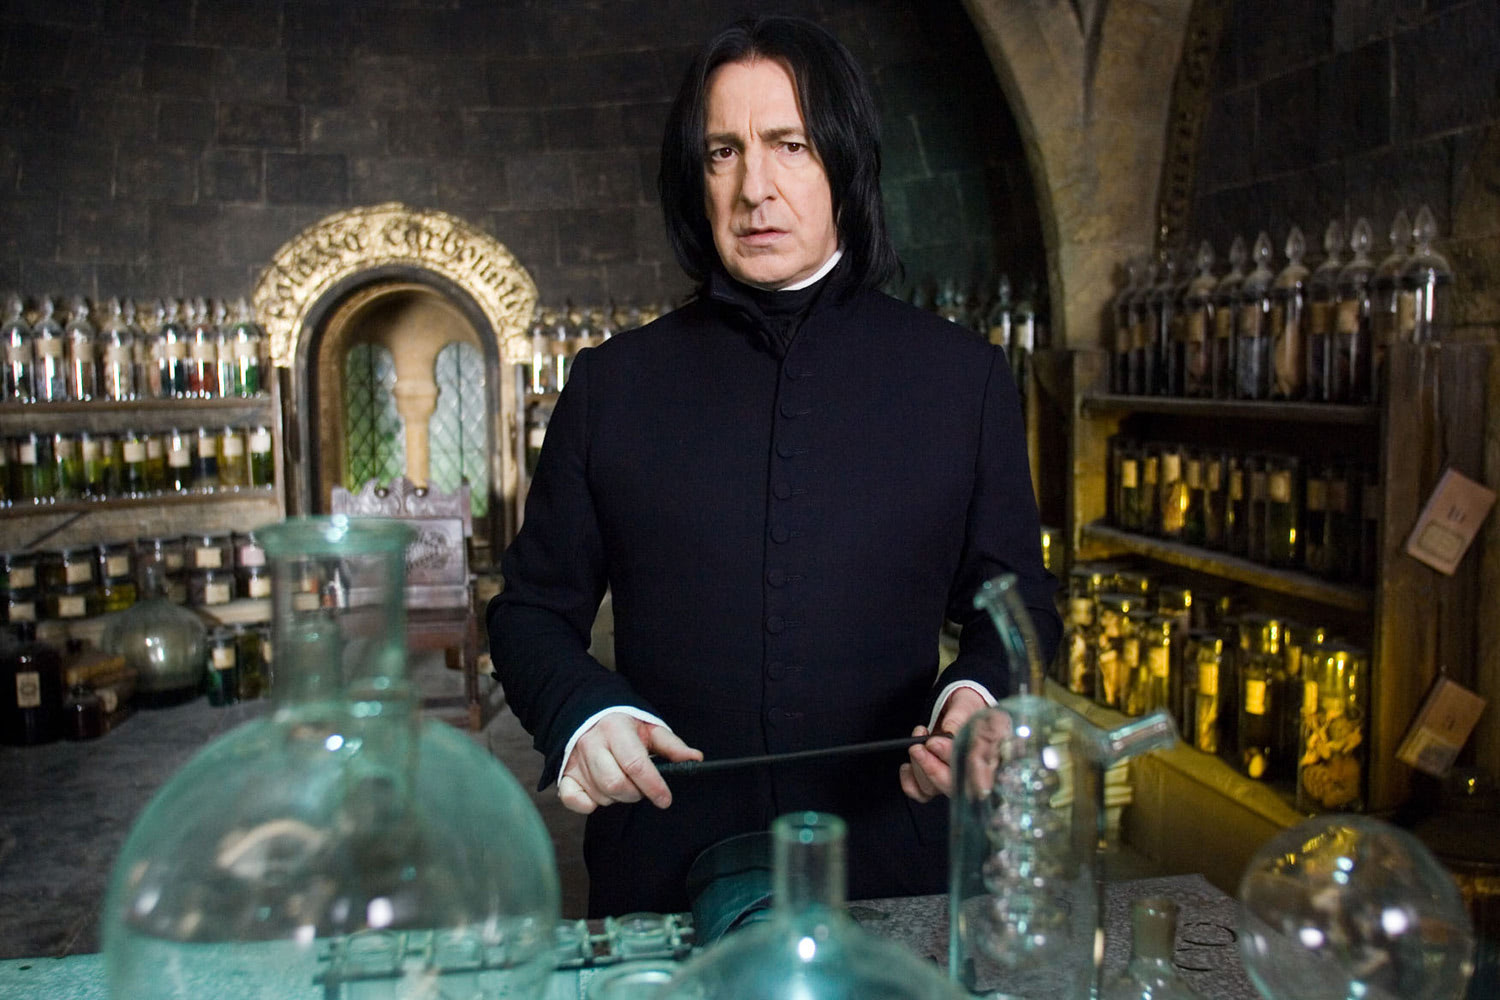 Snape with wand at the ready